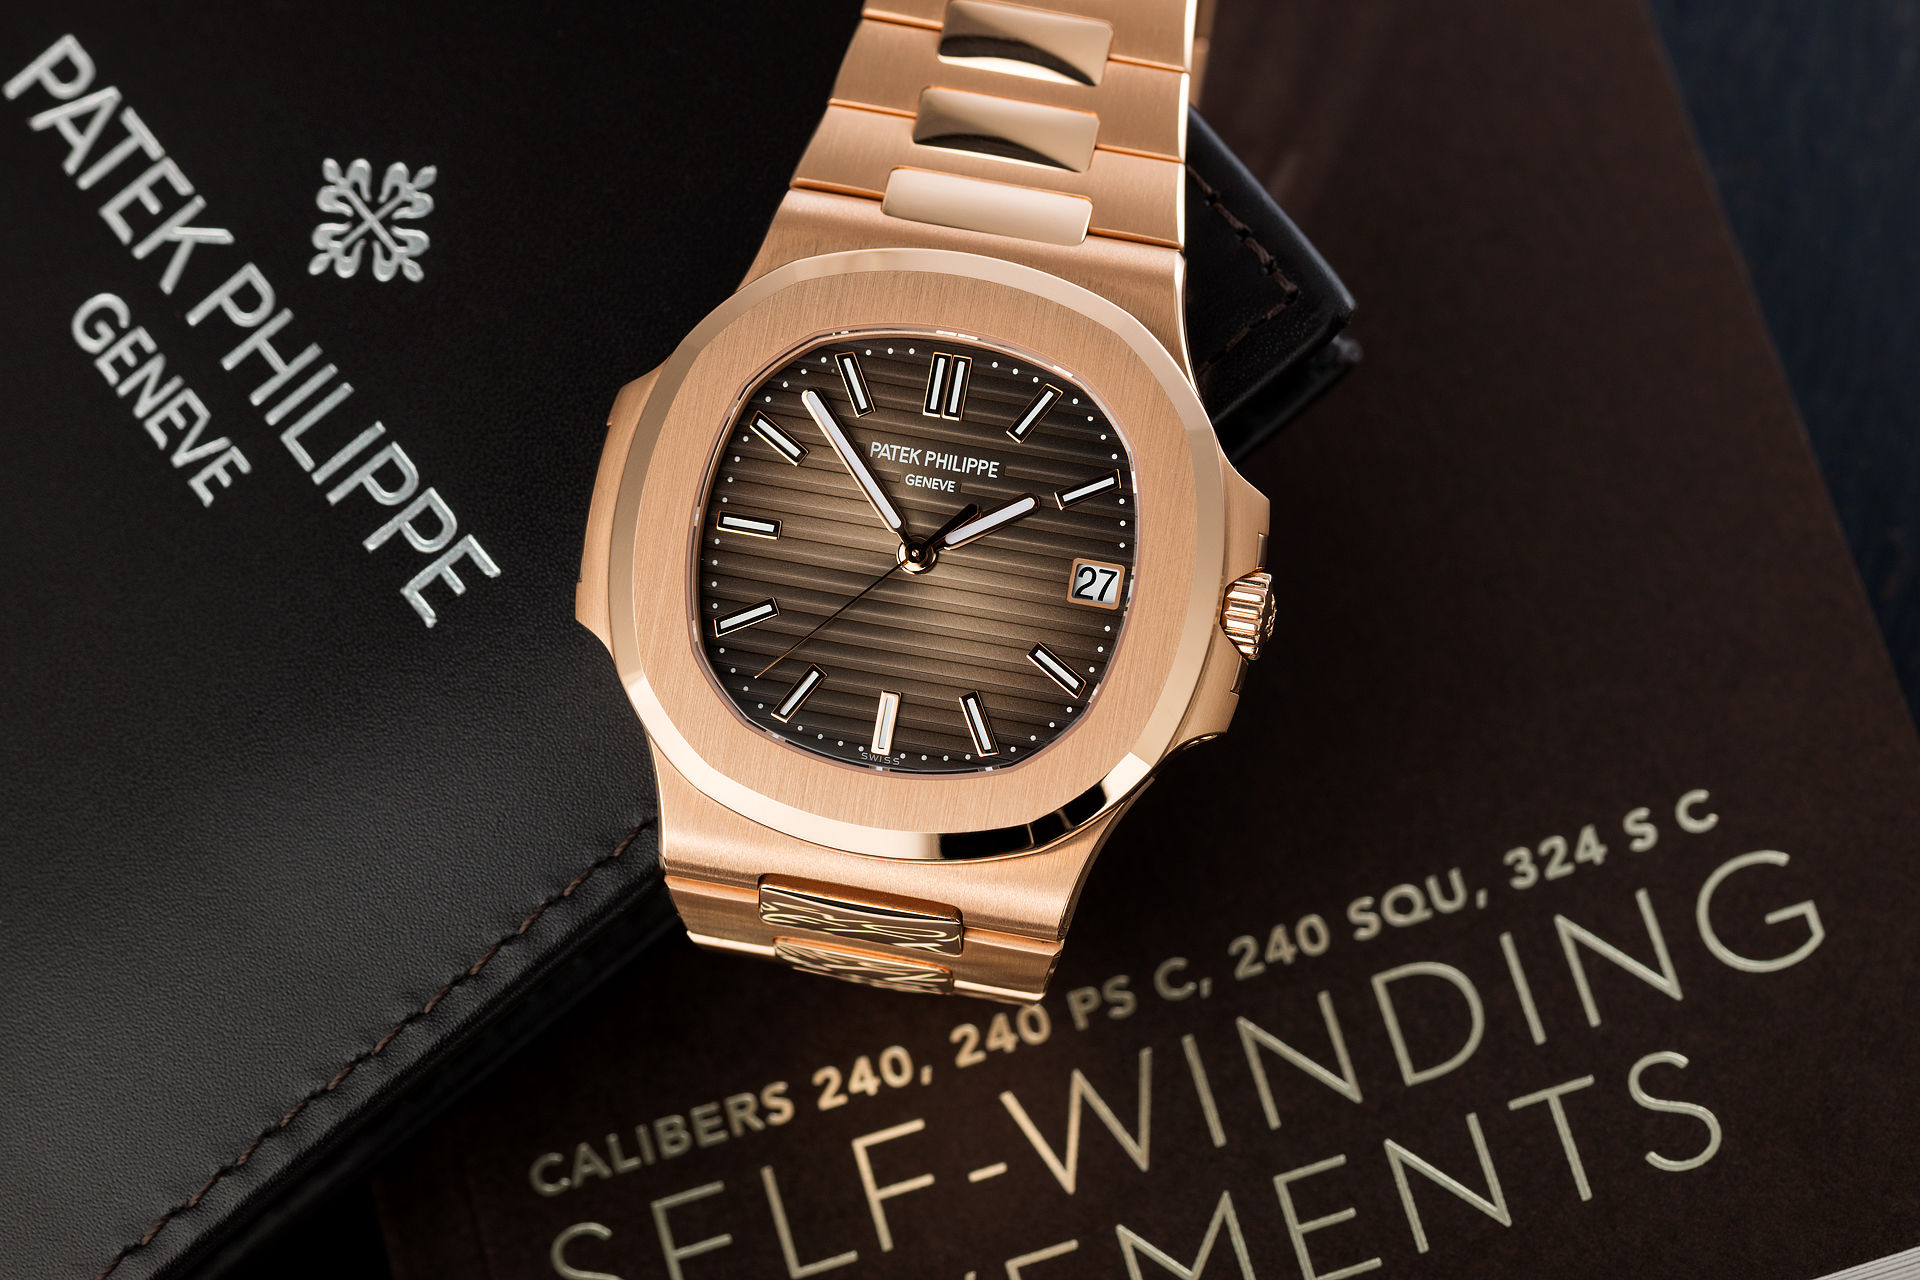 ref 5711/1R-001 | Brand New 'Rose Gold' | Patek Philippe Nautilus